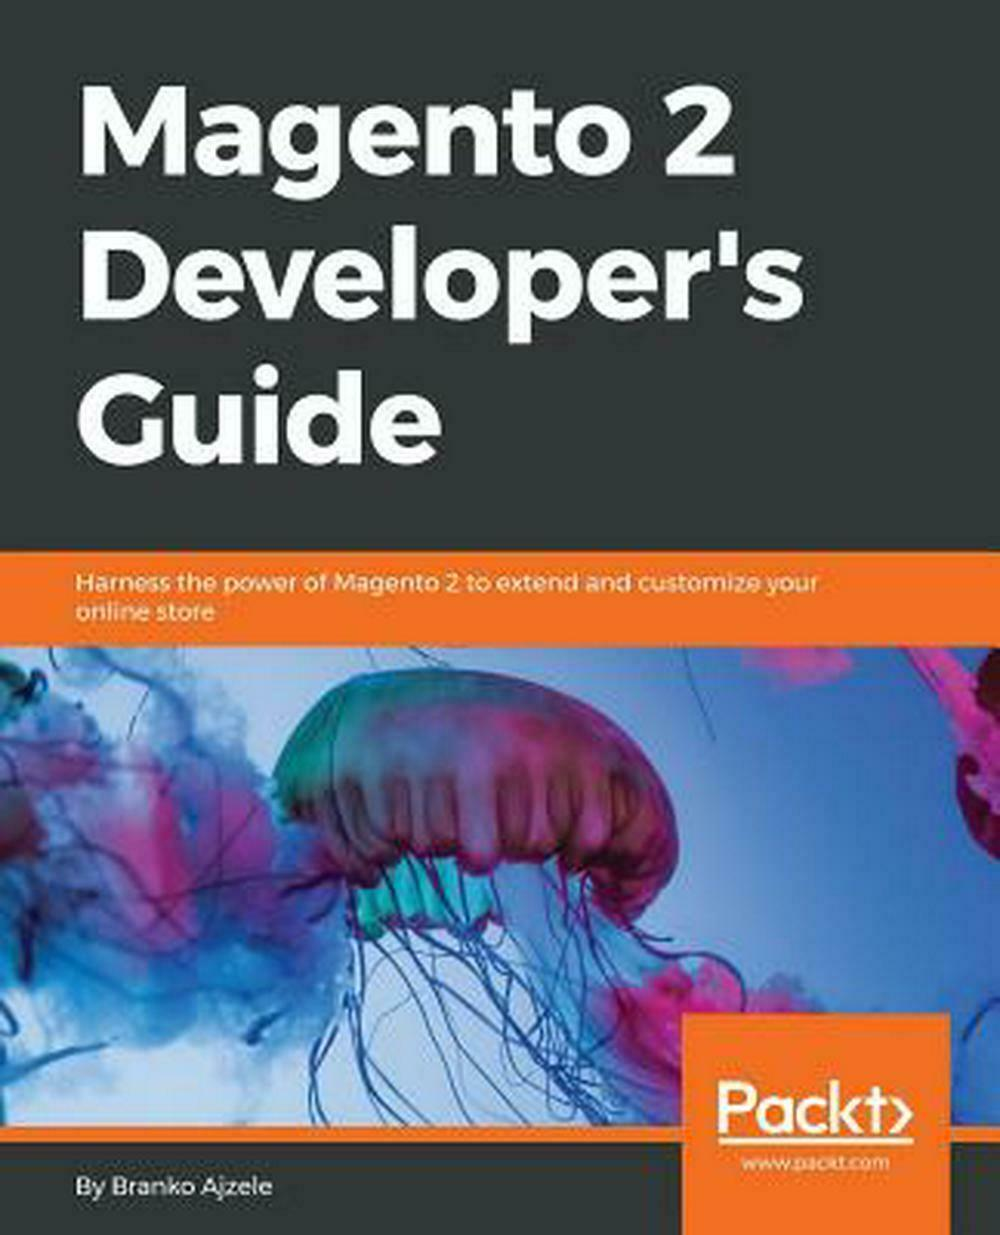 Magento 2 Developers Guide by Branko Ajzele (English) Paperback Book Free Shippi |